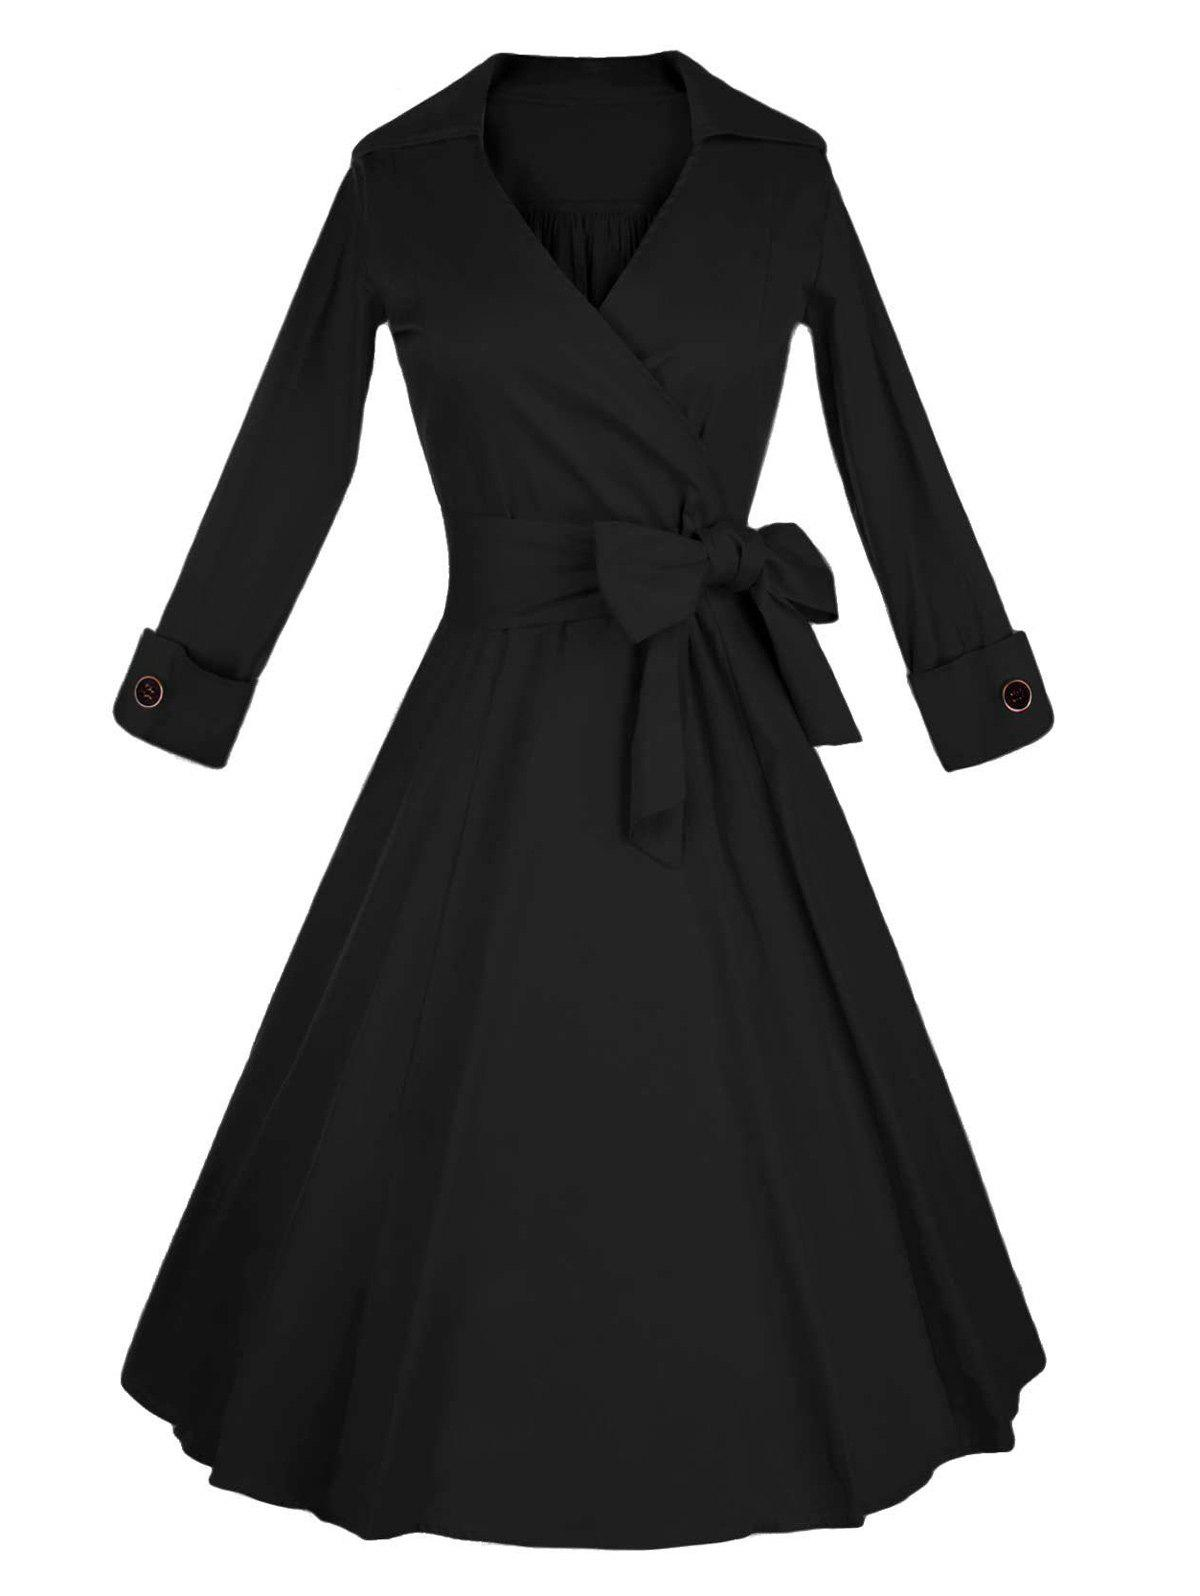 Long Sleeve Wrap Swing Midi Vintage DressWOMEN<br><br>Size: L; Color: BLACK; Style: Vintage; Material: Cotton Blend; Silhouette: A-Line; Dresses Length: Mid-Calf; Neckline: V-Neck; Sleeve Length: Long Sleeves; Pattern Type: Solid; With Belt: No; Season: Fall,Spring,Winter; Weight: 0.550kg; Package Contents: 1 x Dress;